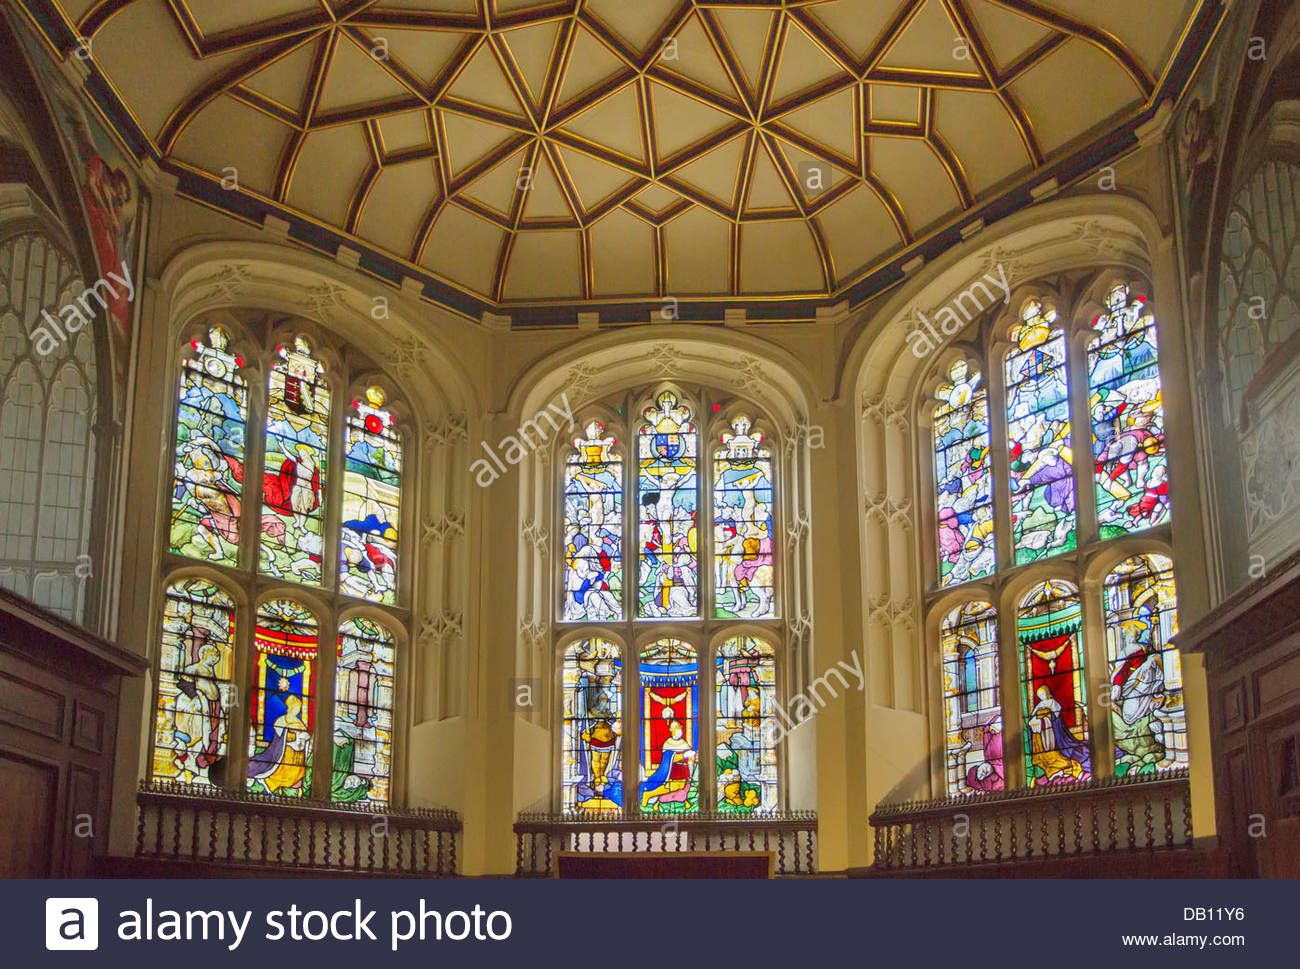 colourful-stained-glass-windows-in-the-chapel-at-the-vyne-basingstoke-DB11Y6.jpg (1300×969)